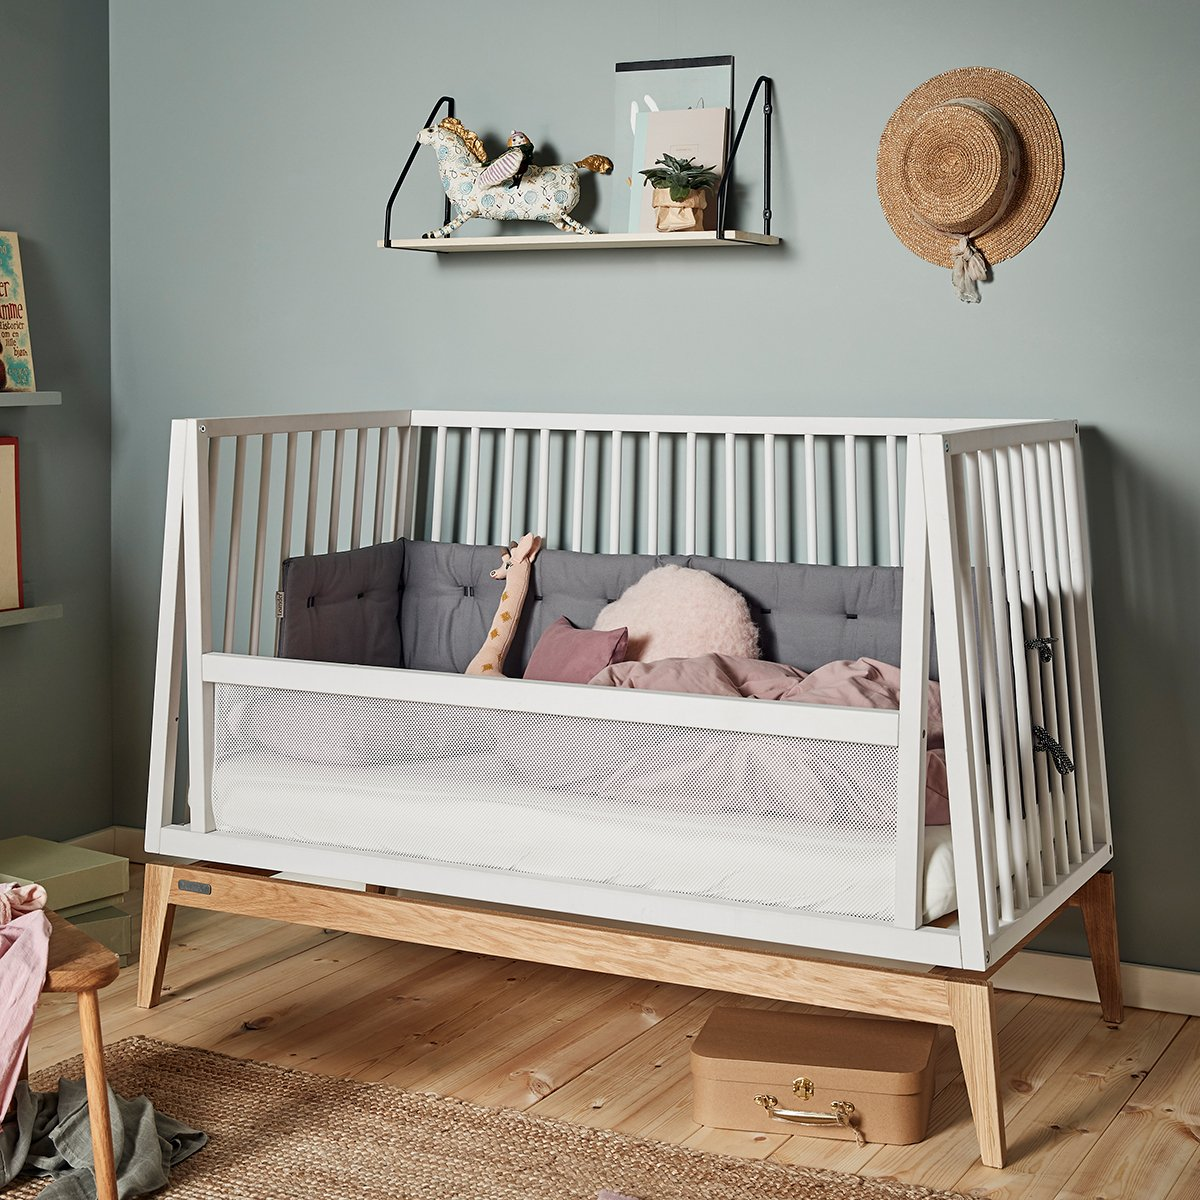 Baby crib in When to start buying baby stuff?